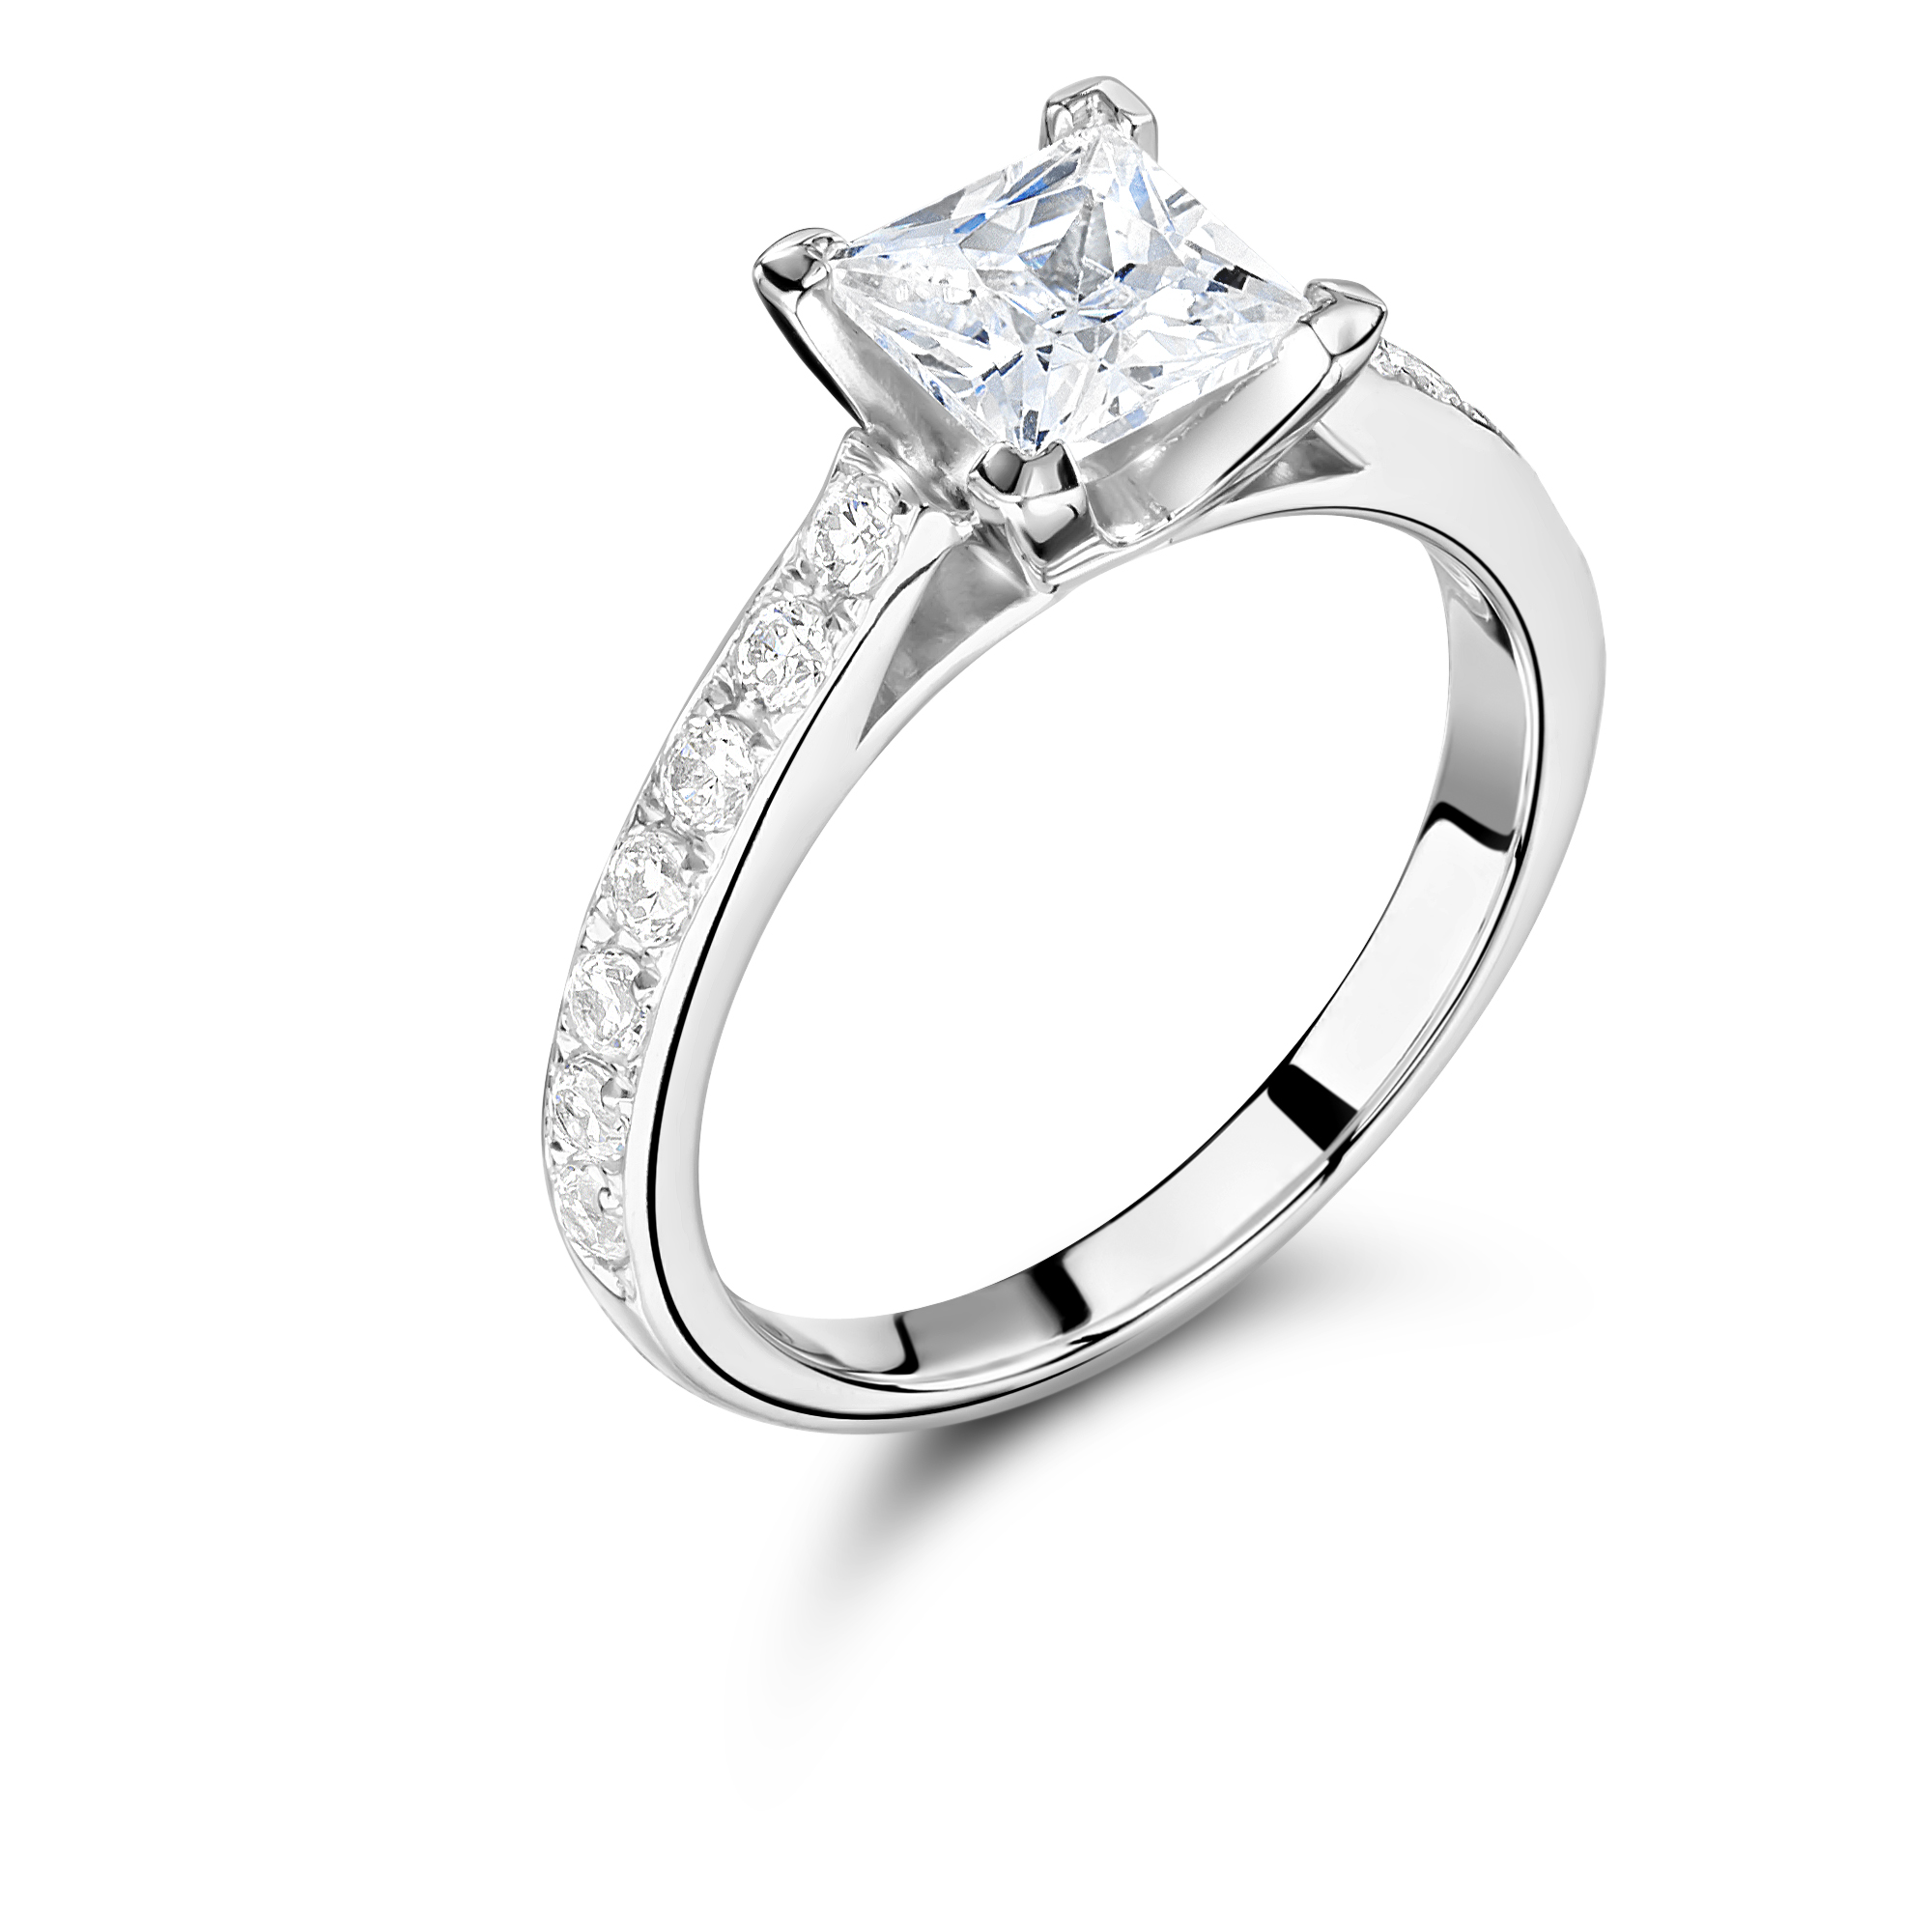 pin engagement diamond ring in estermans pear stunning platinum rings at wedding fancy shaped designer mounting